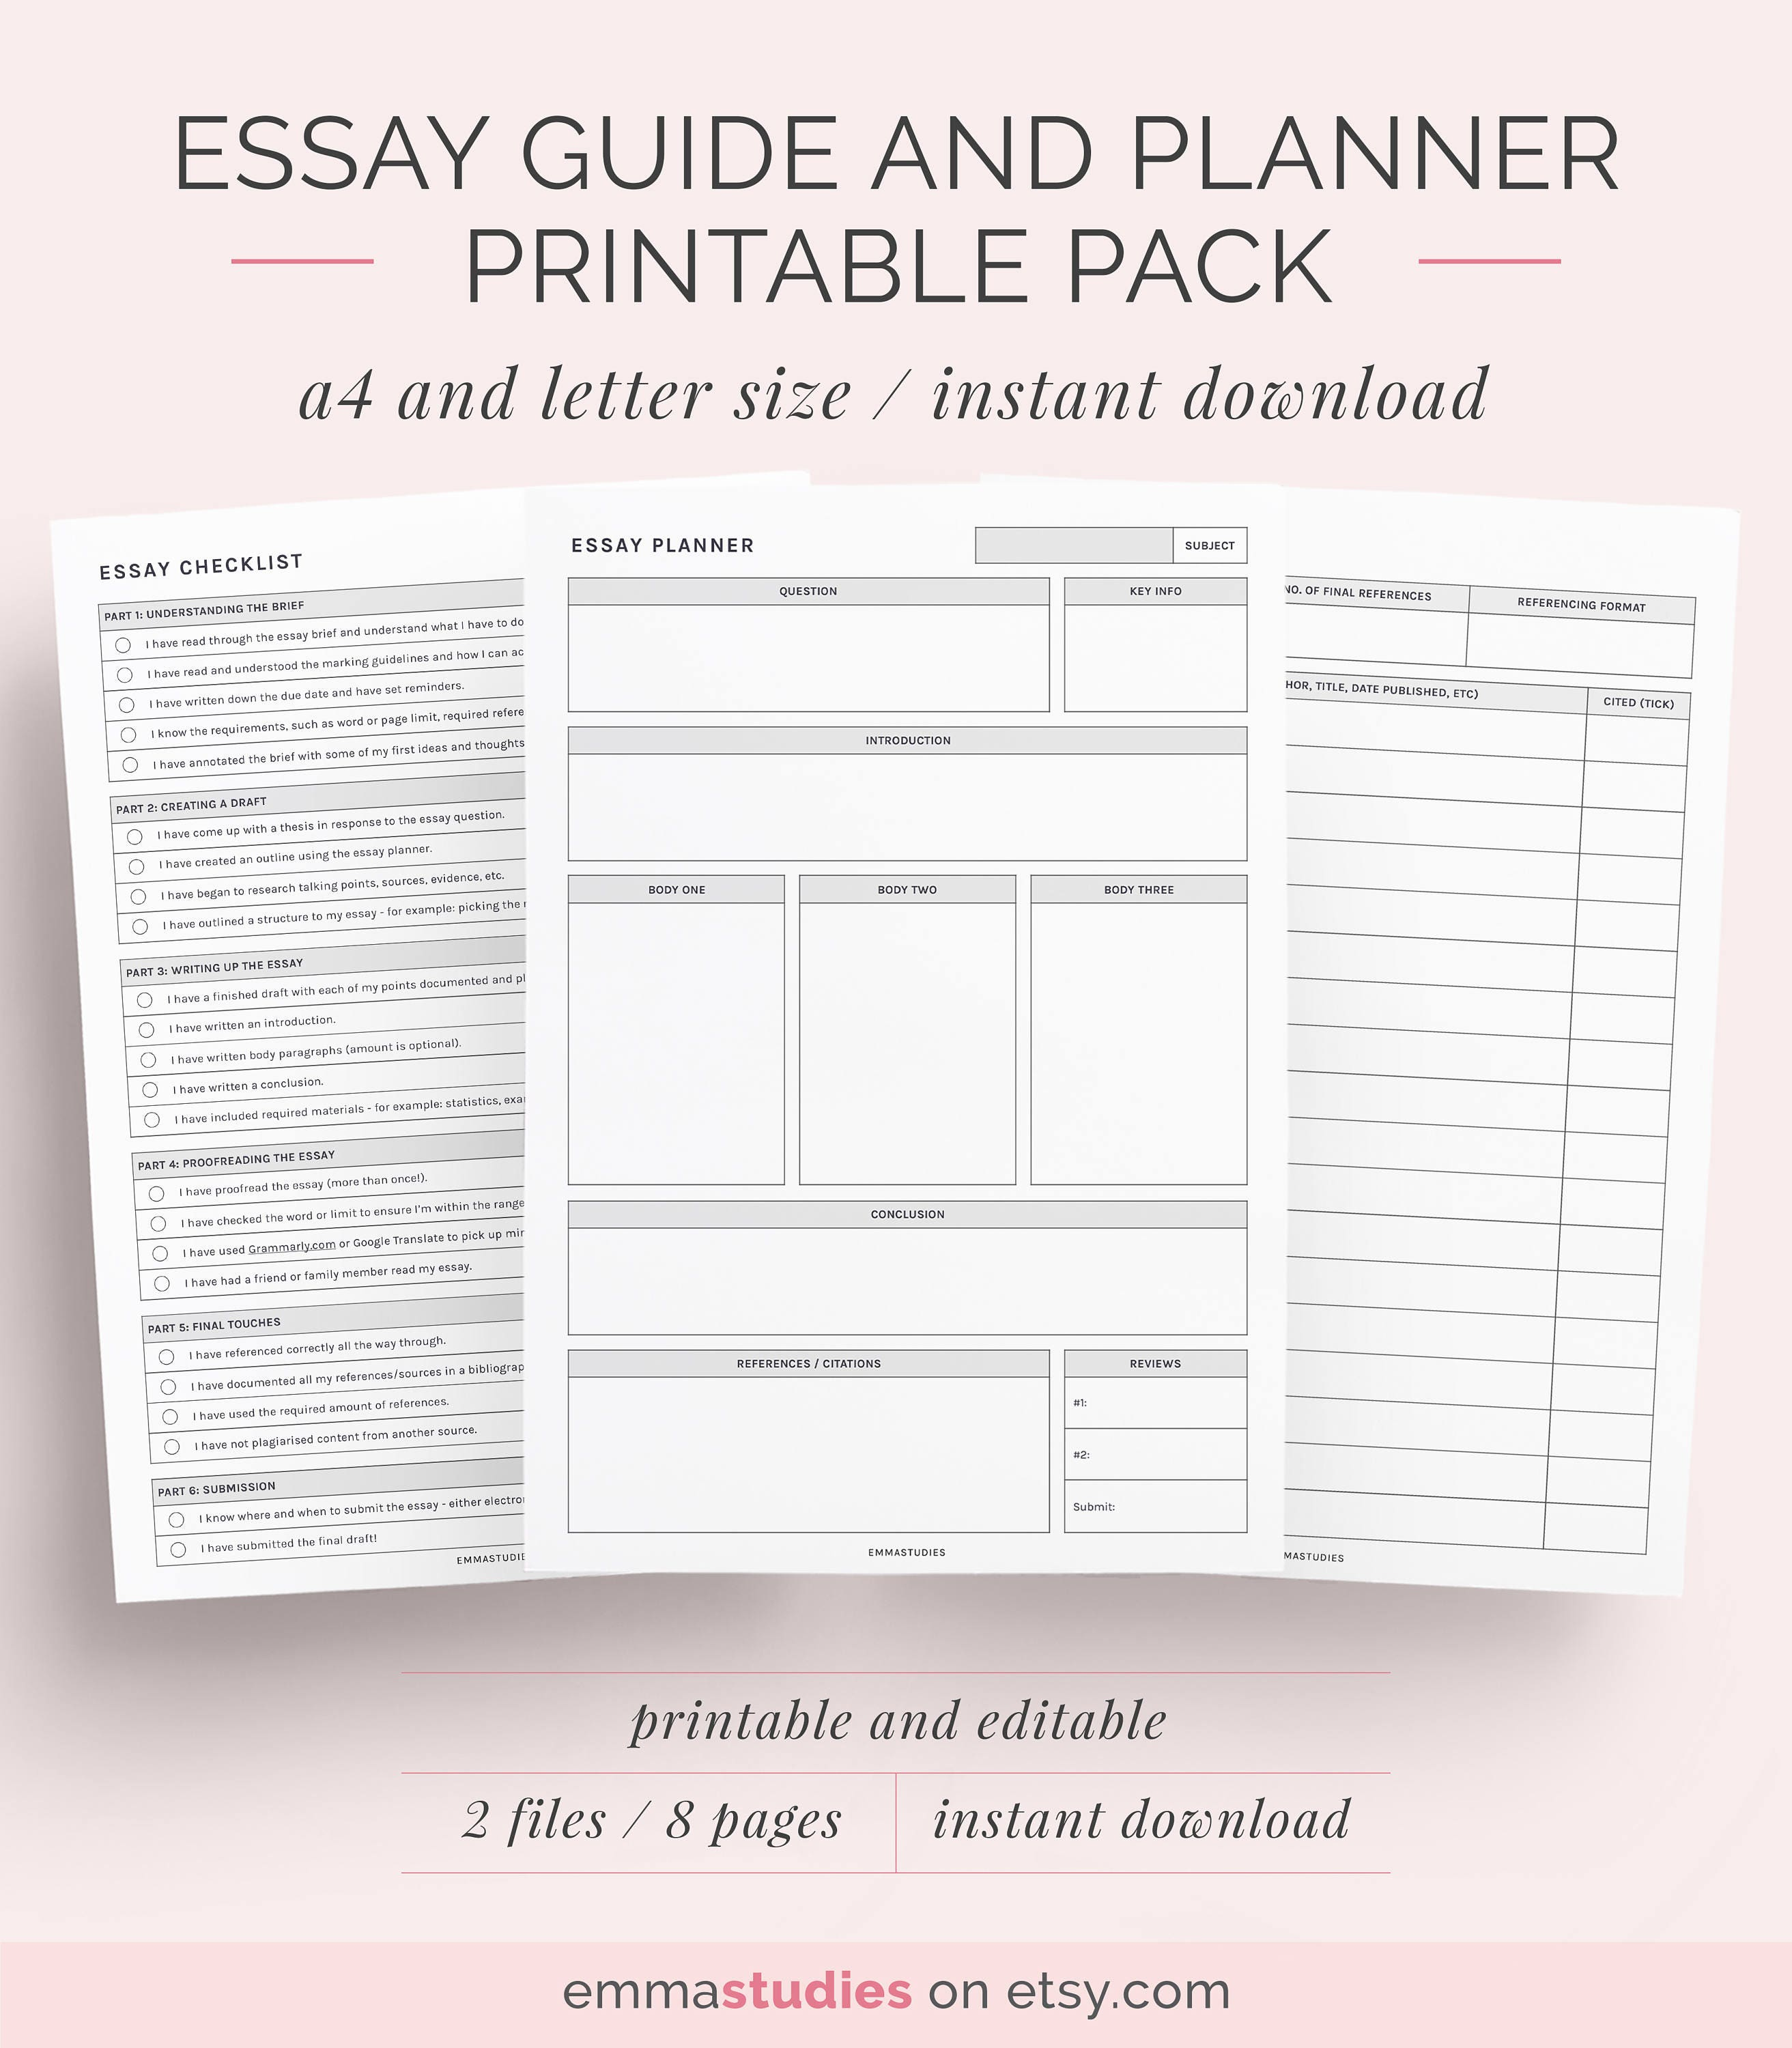 essay guide and planner printable pack school college 🔎zoom